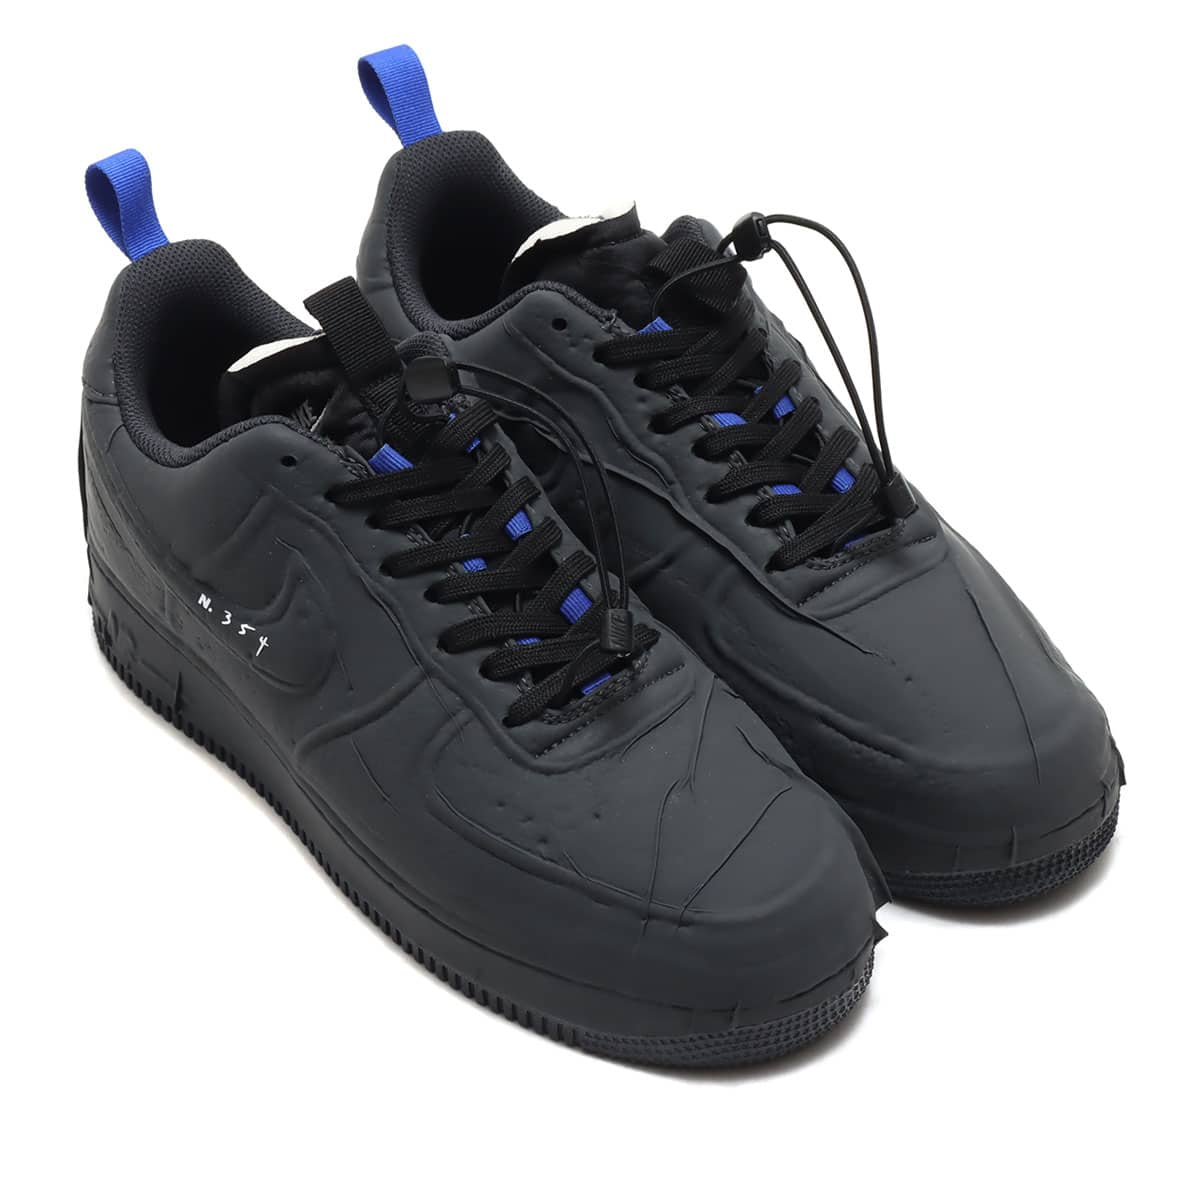 NIKE AIR FORCE 1 EXPERIMENTAL BLACK/ANTHRACITE-CHILE RED-HYPER ROYAL 21SP-I_photo_large